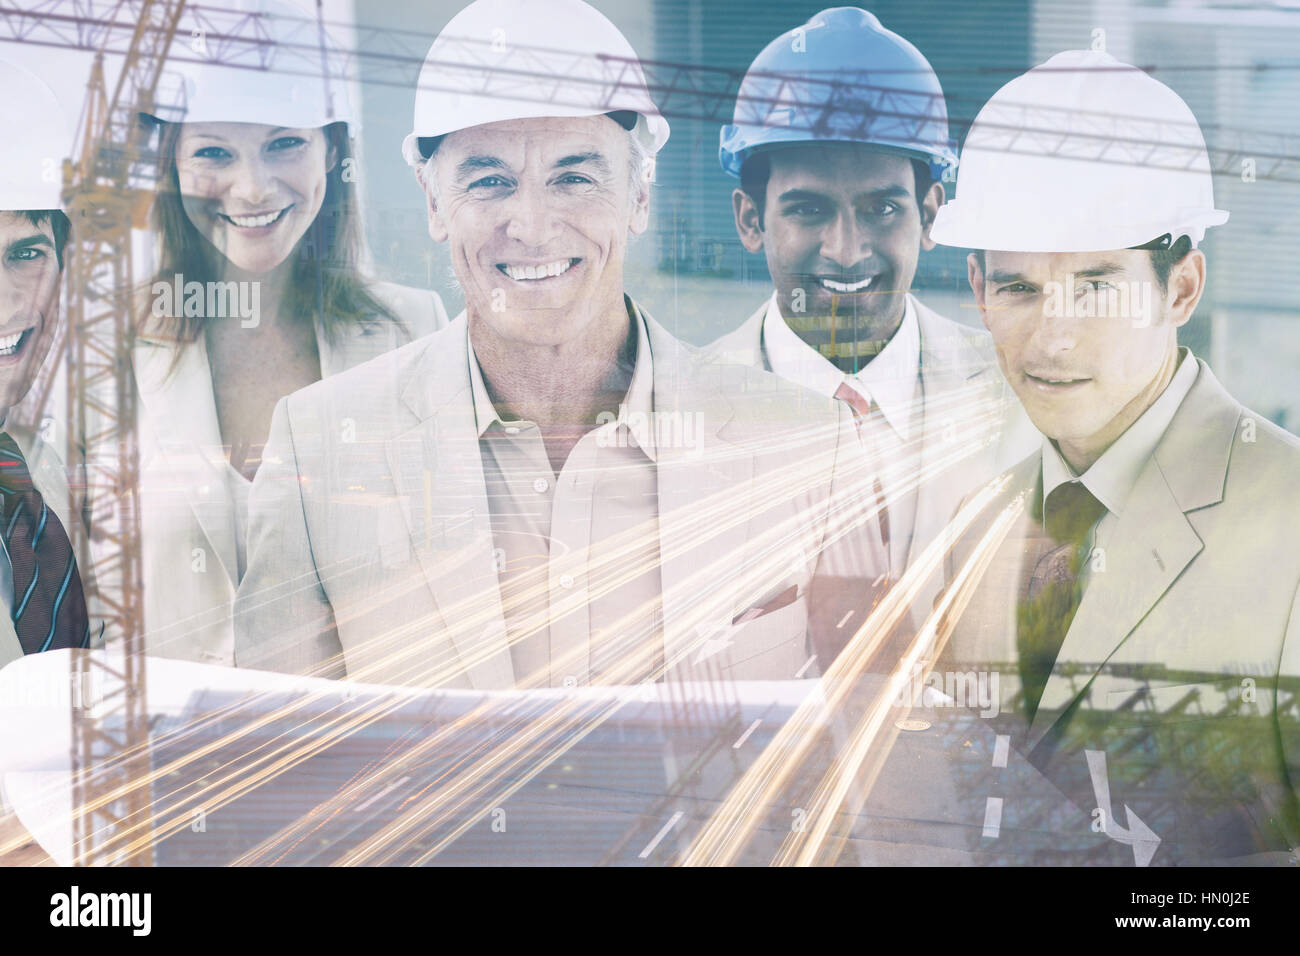 Crane and building construction site  against portrait of architects wearing hardhats - Stock Image